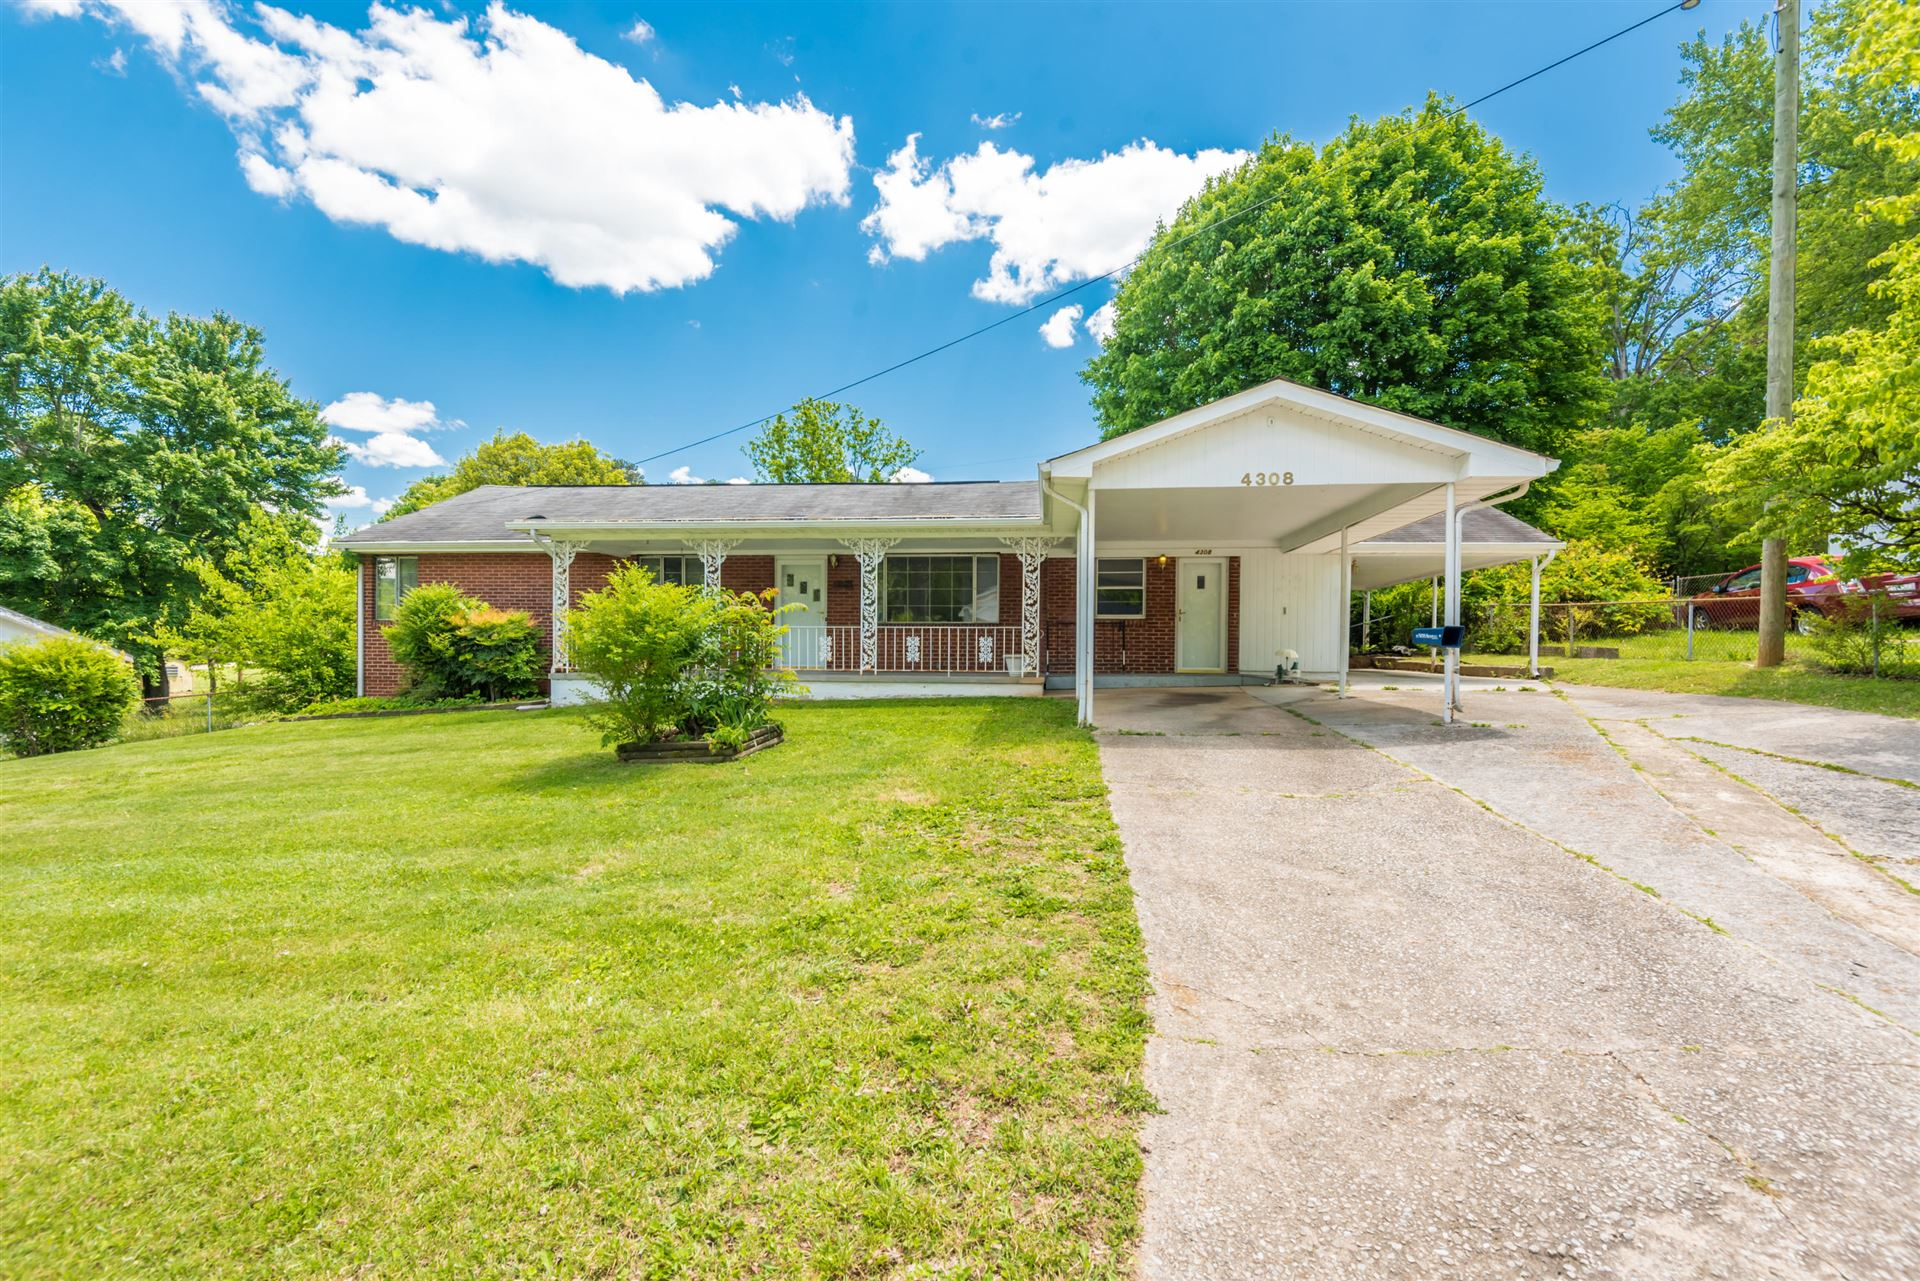 4308 Lonas Drive, Knoxville, TN 37909 - MLS#: 1152924